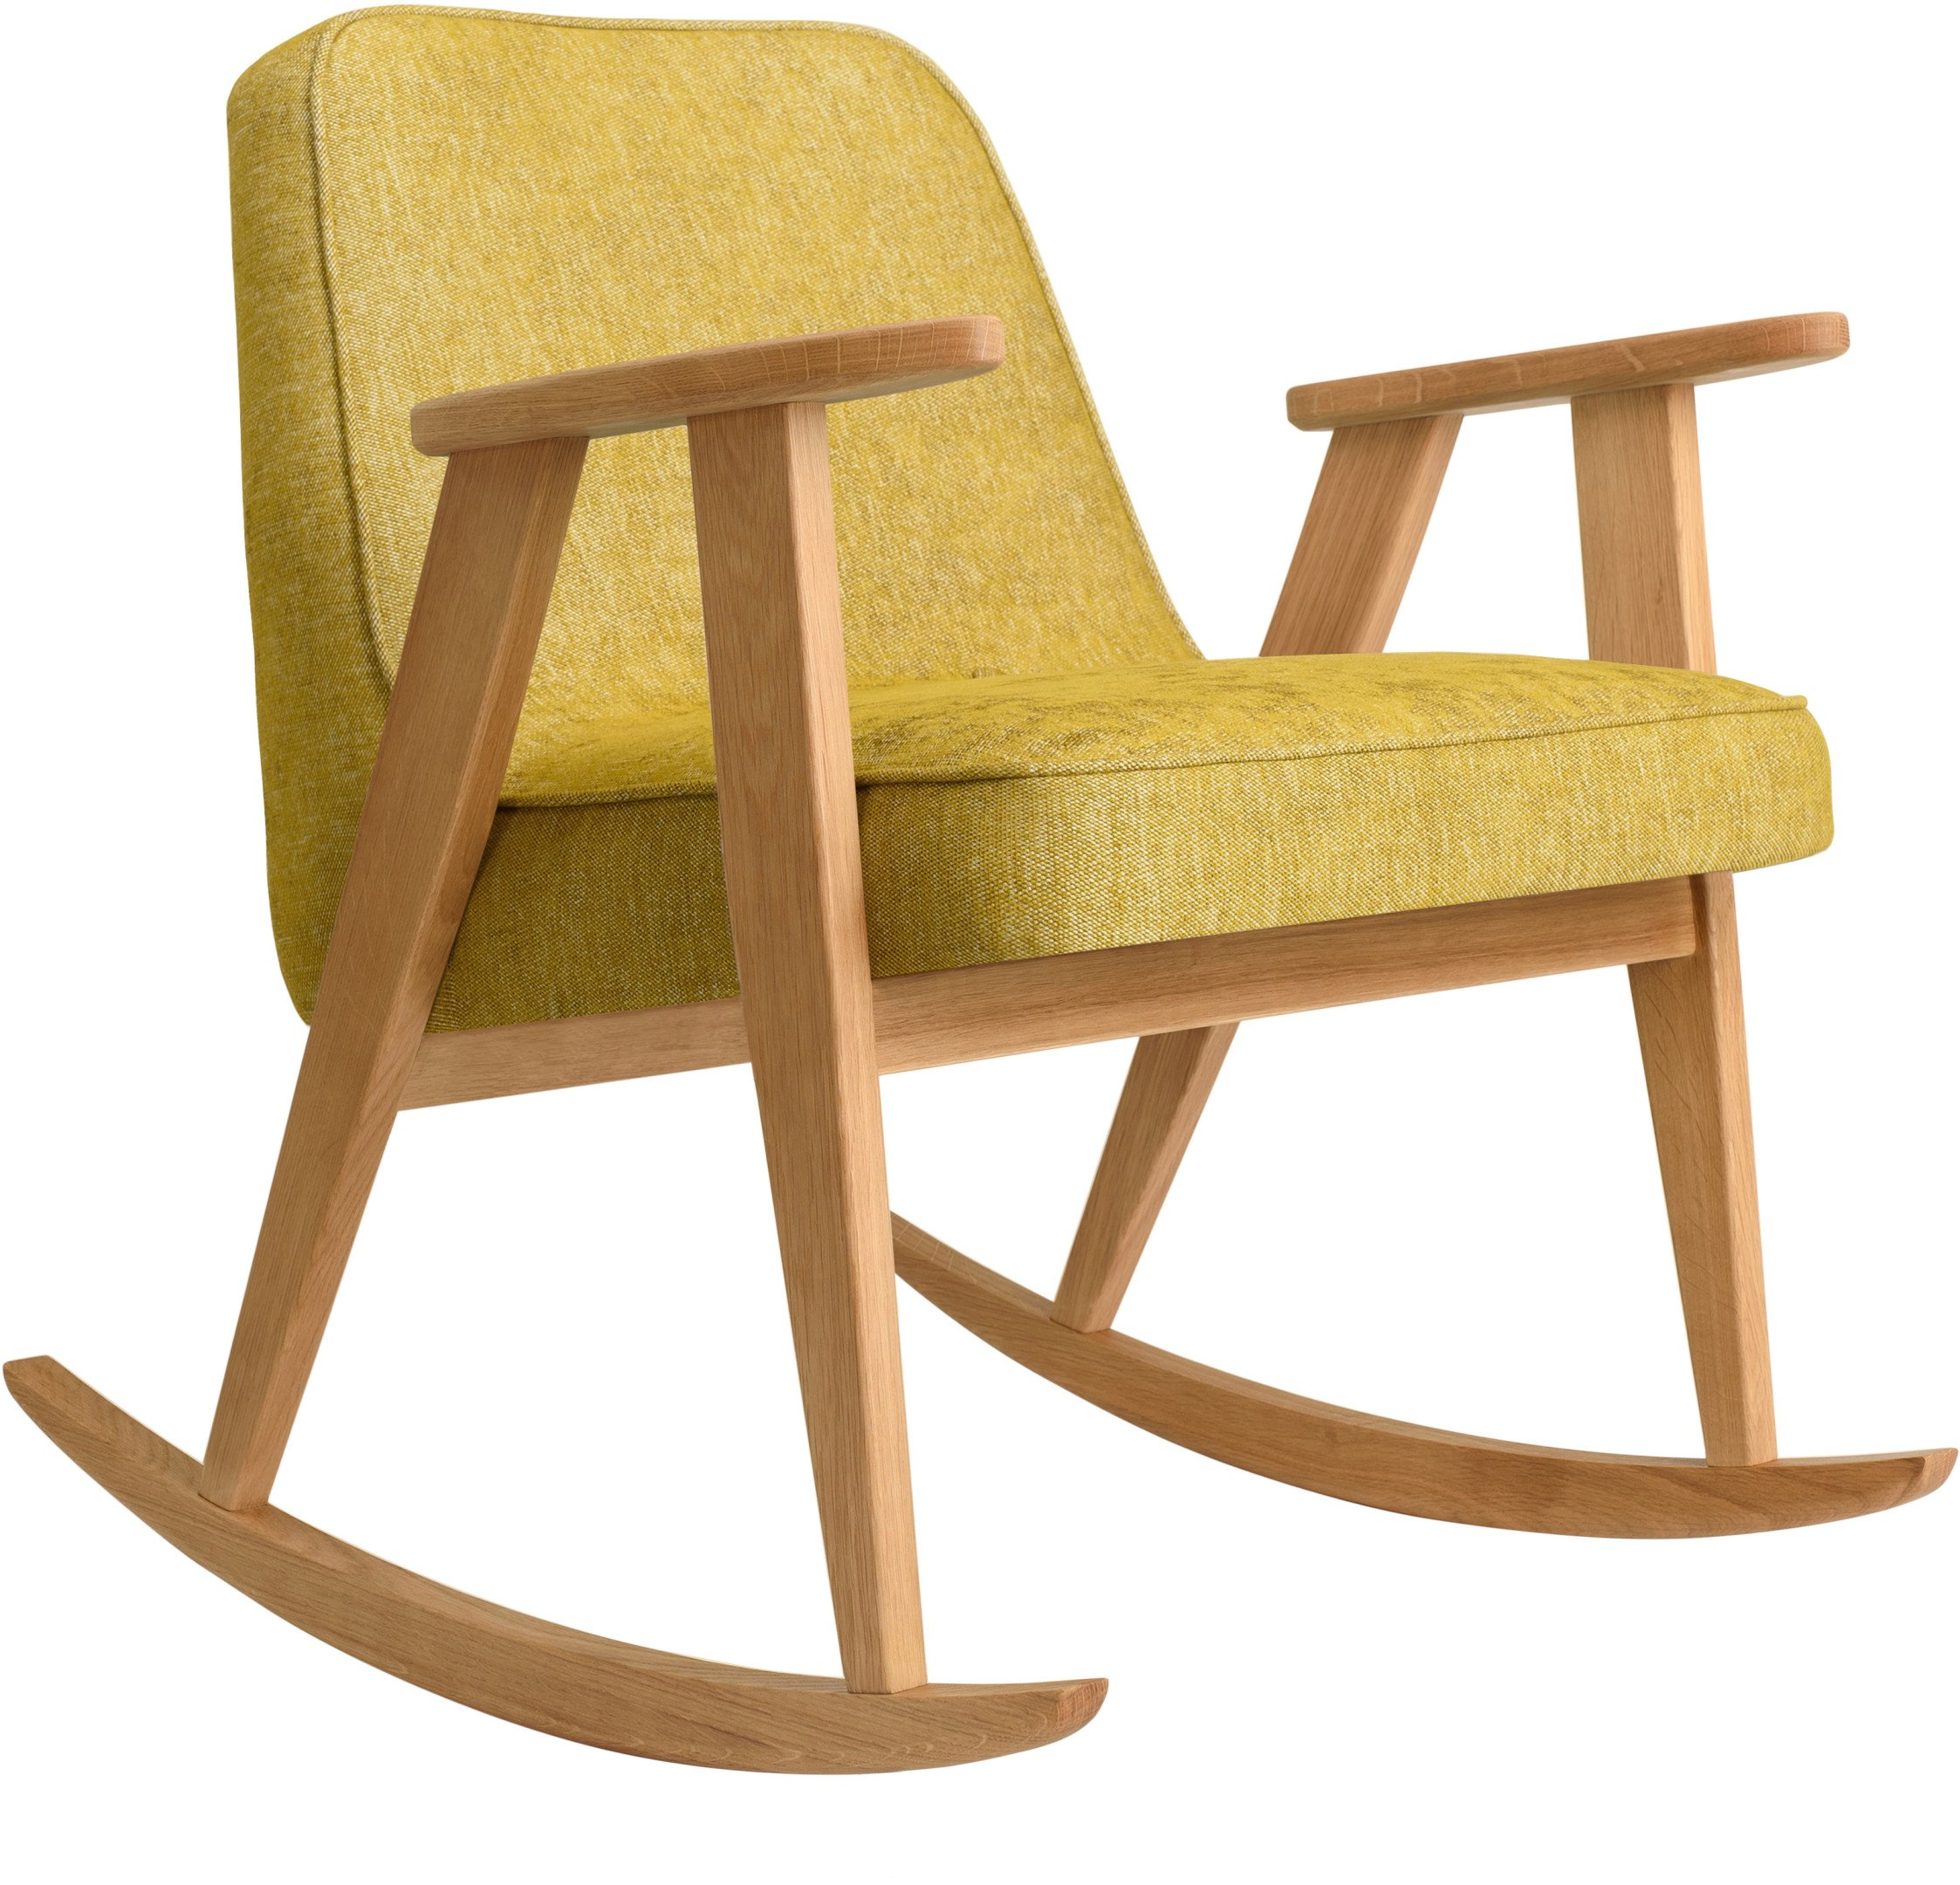 366 Rocking Chair Loft Mustard (natural oak) by Józef Chierowski